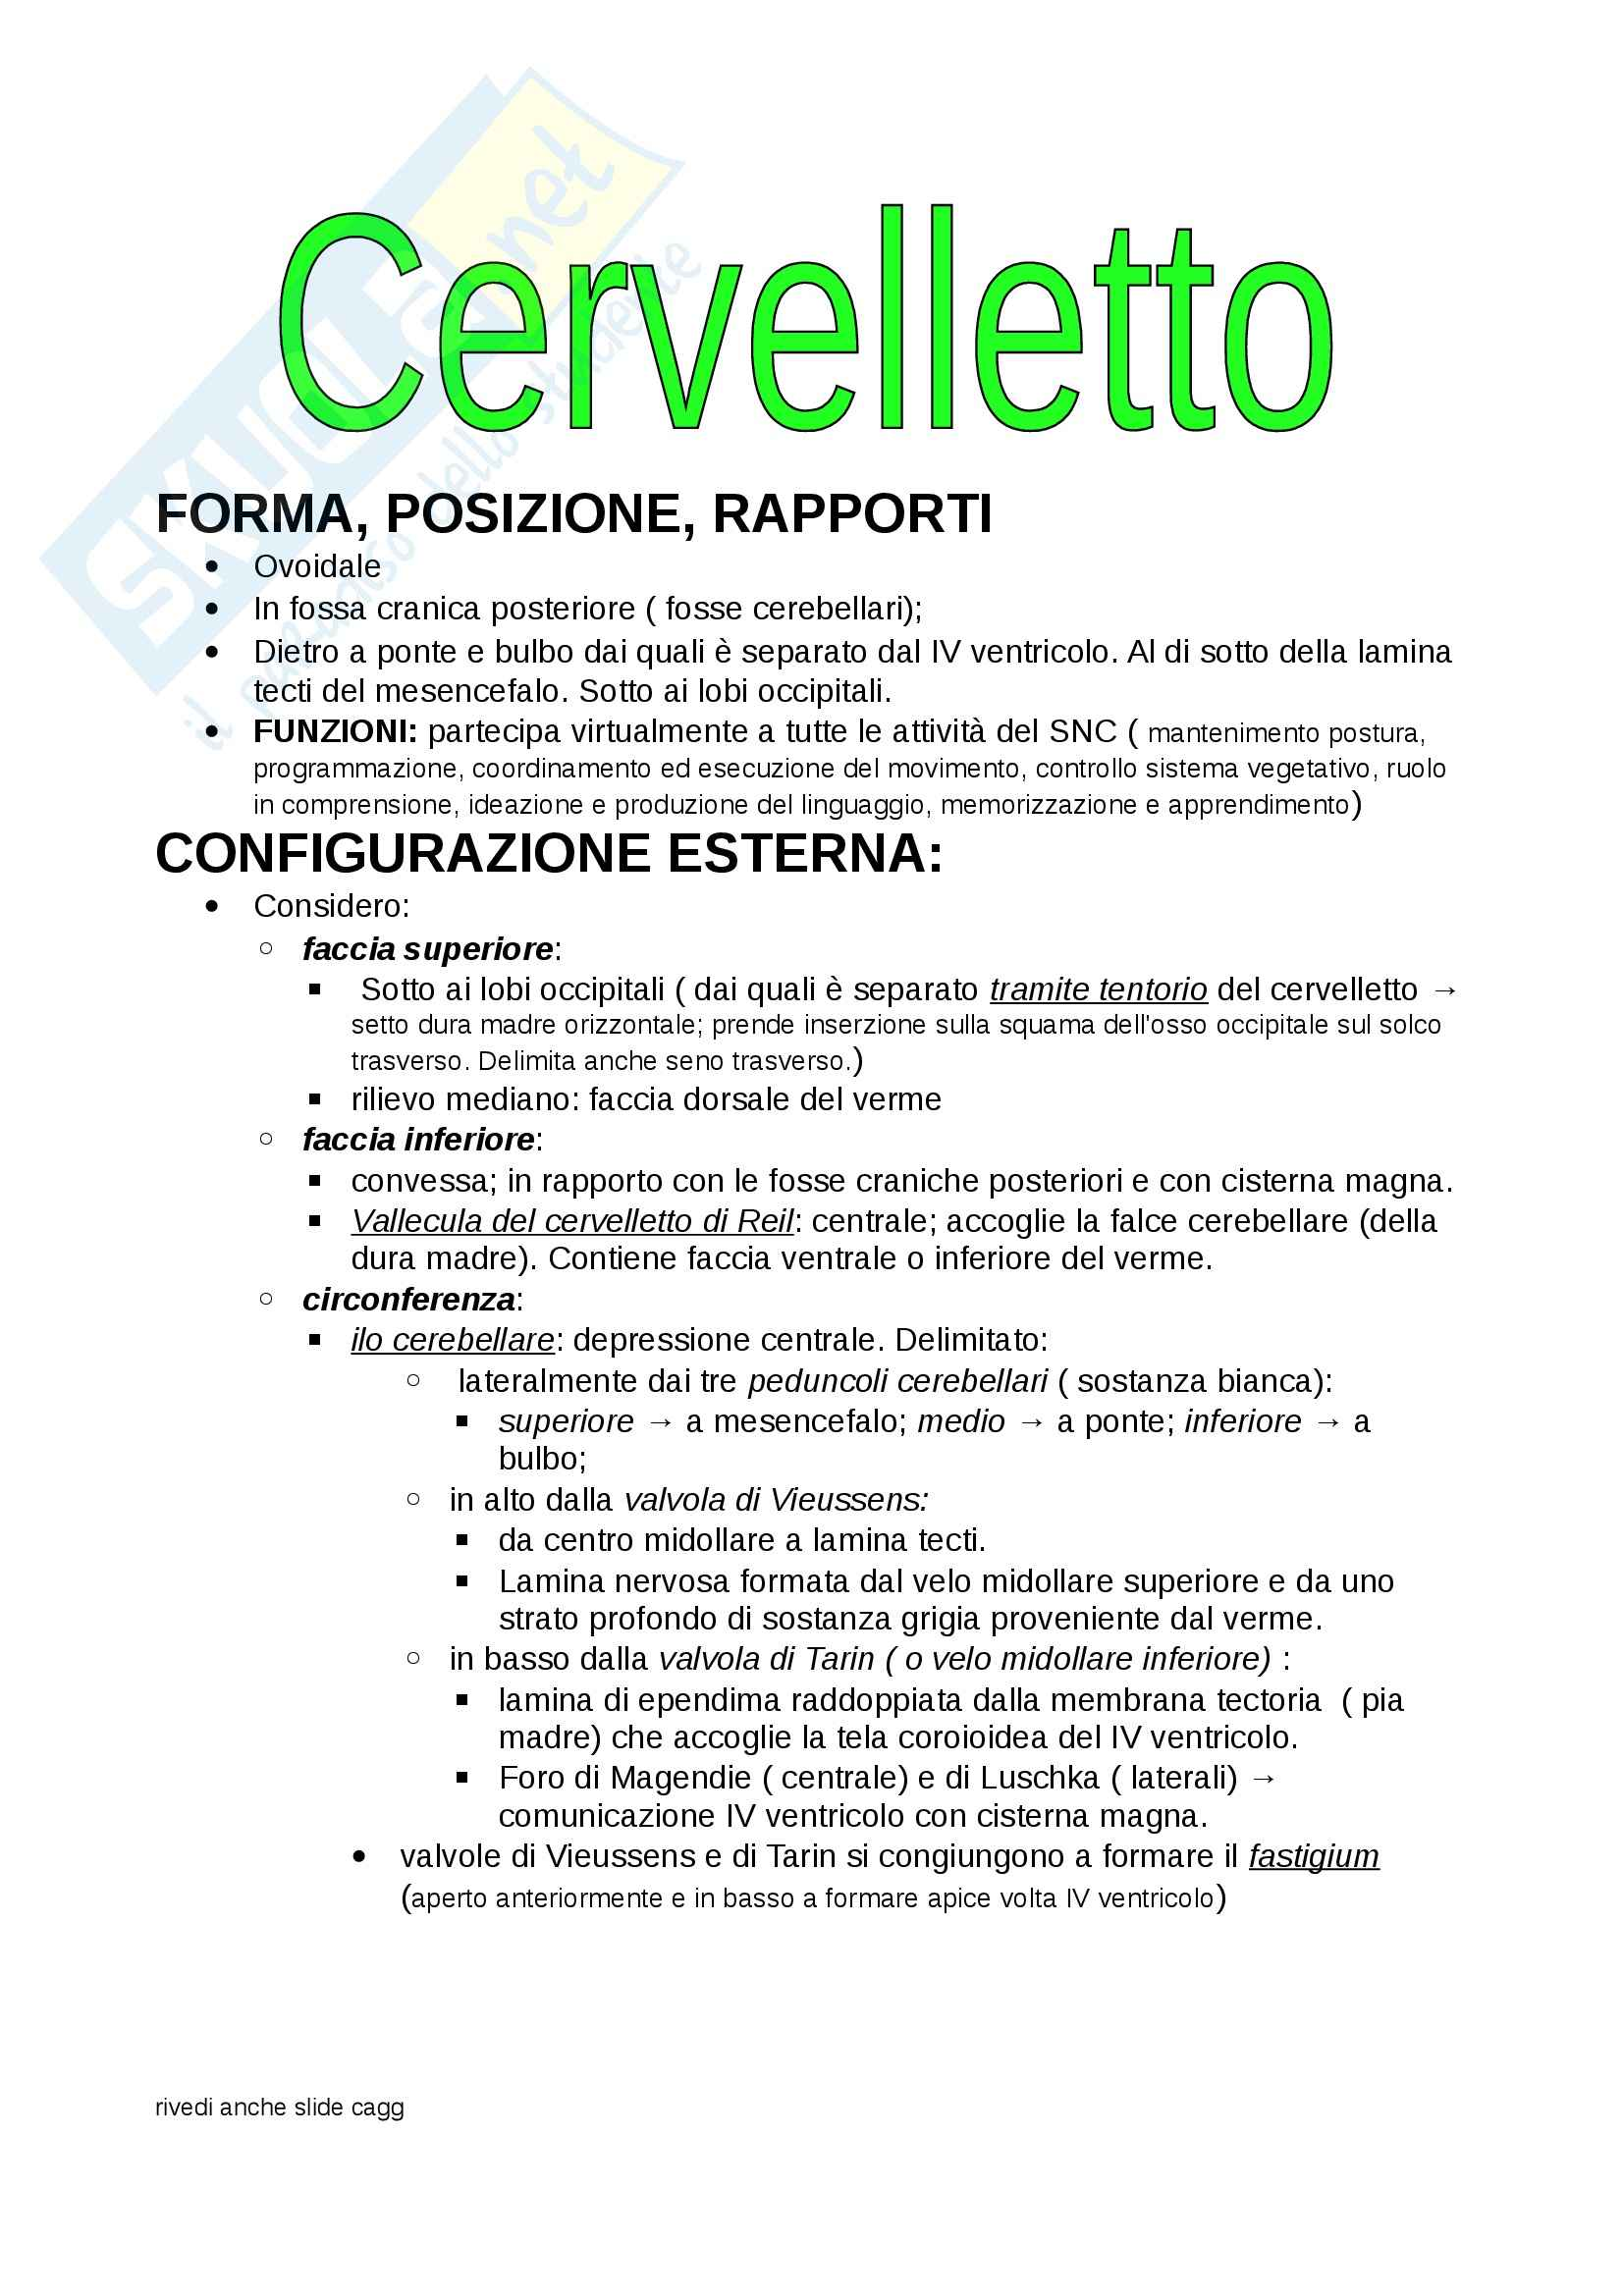 Cervelletto, Anatomia